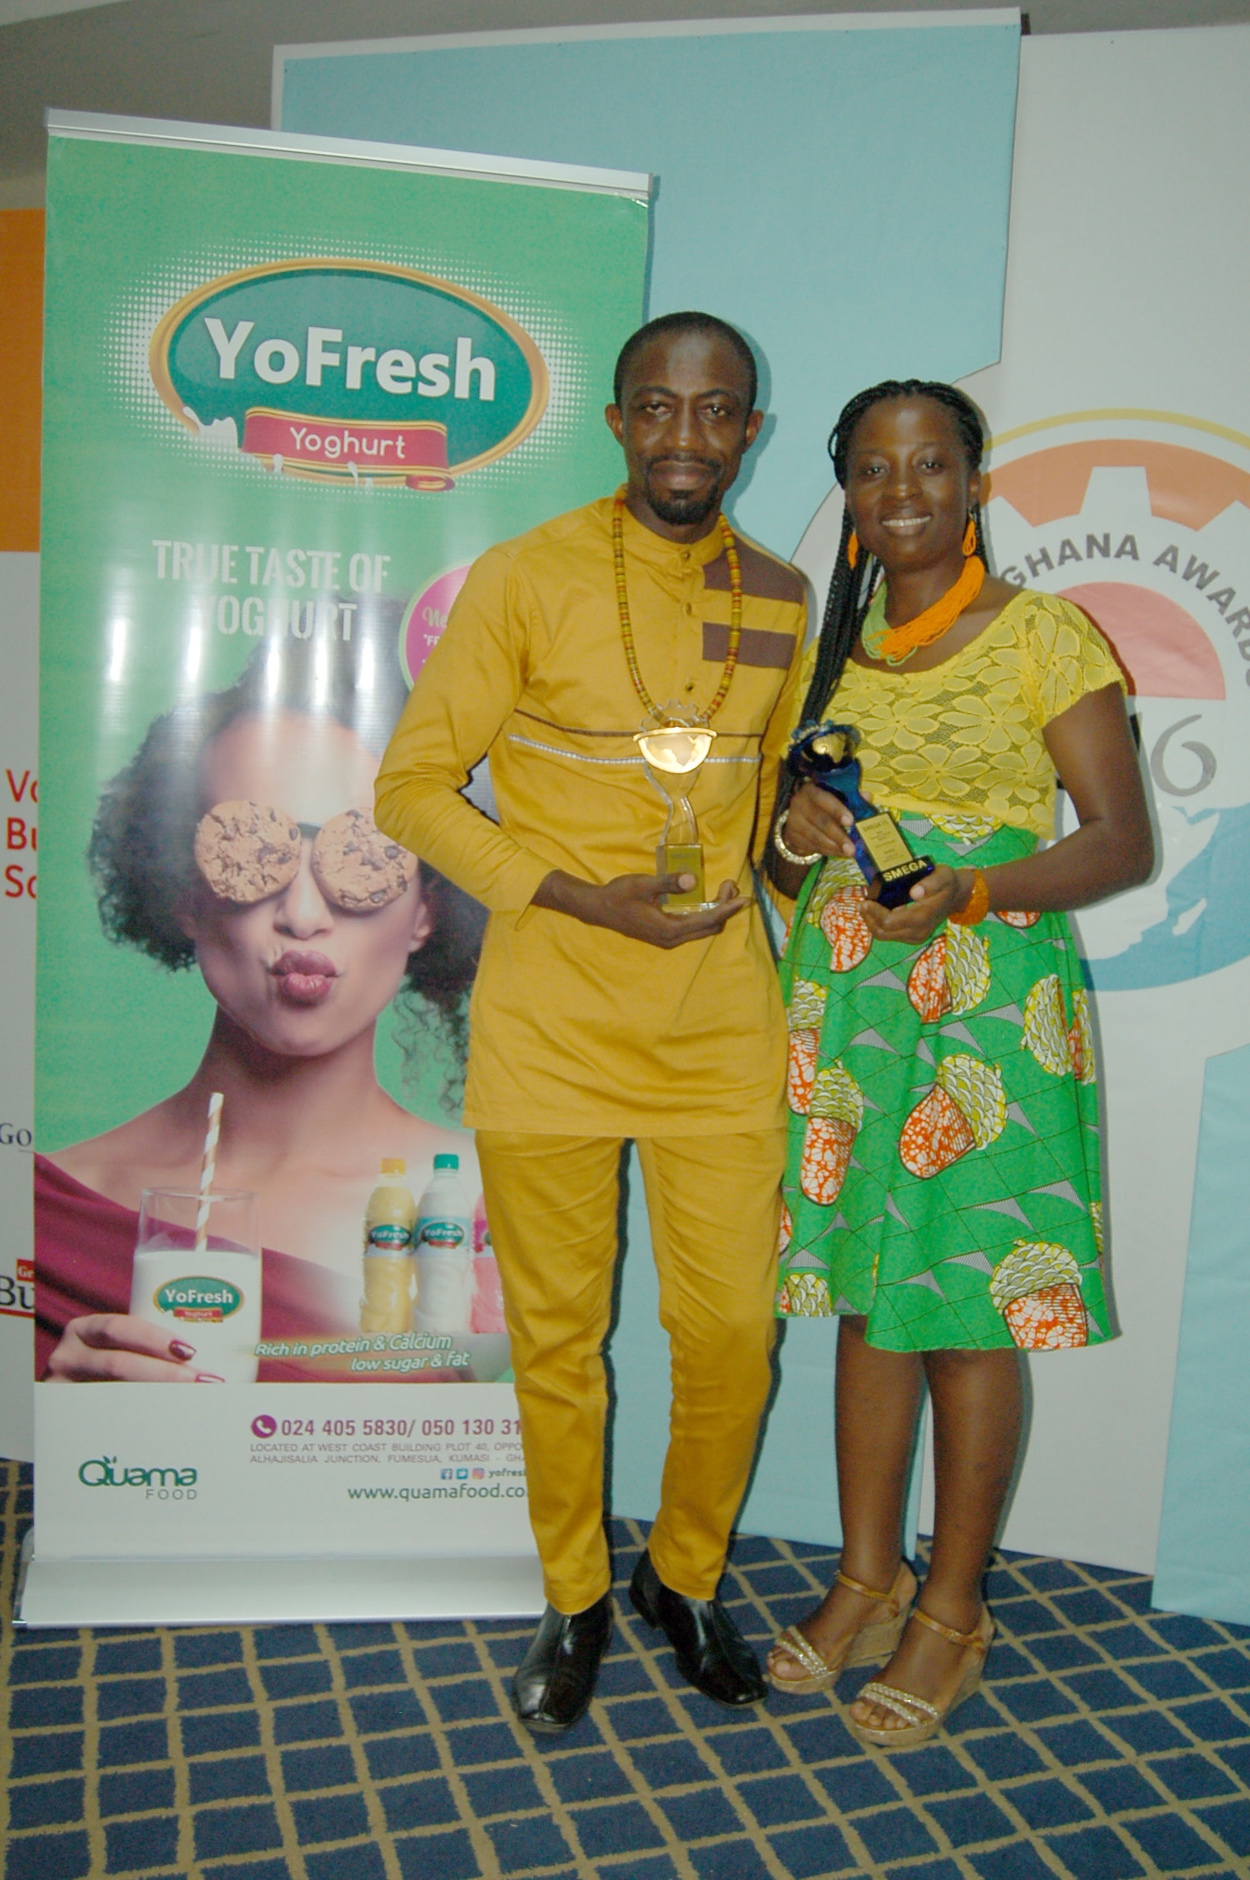 Mr and Mrs Owusu Mensah Showcasing the two awards